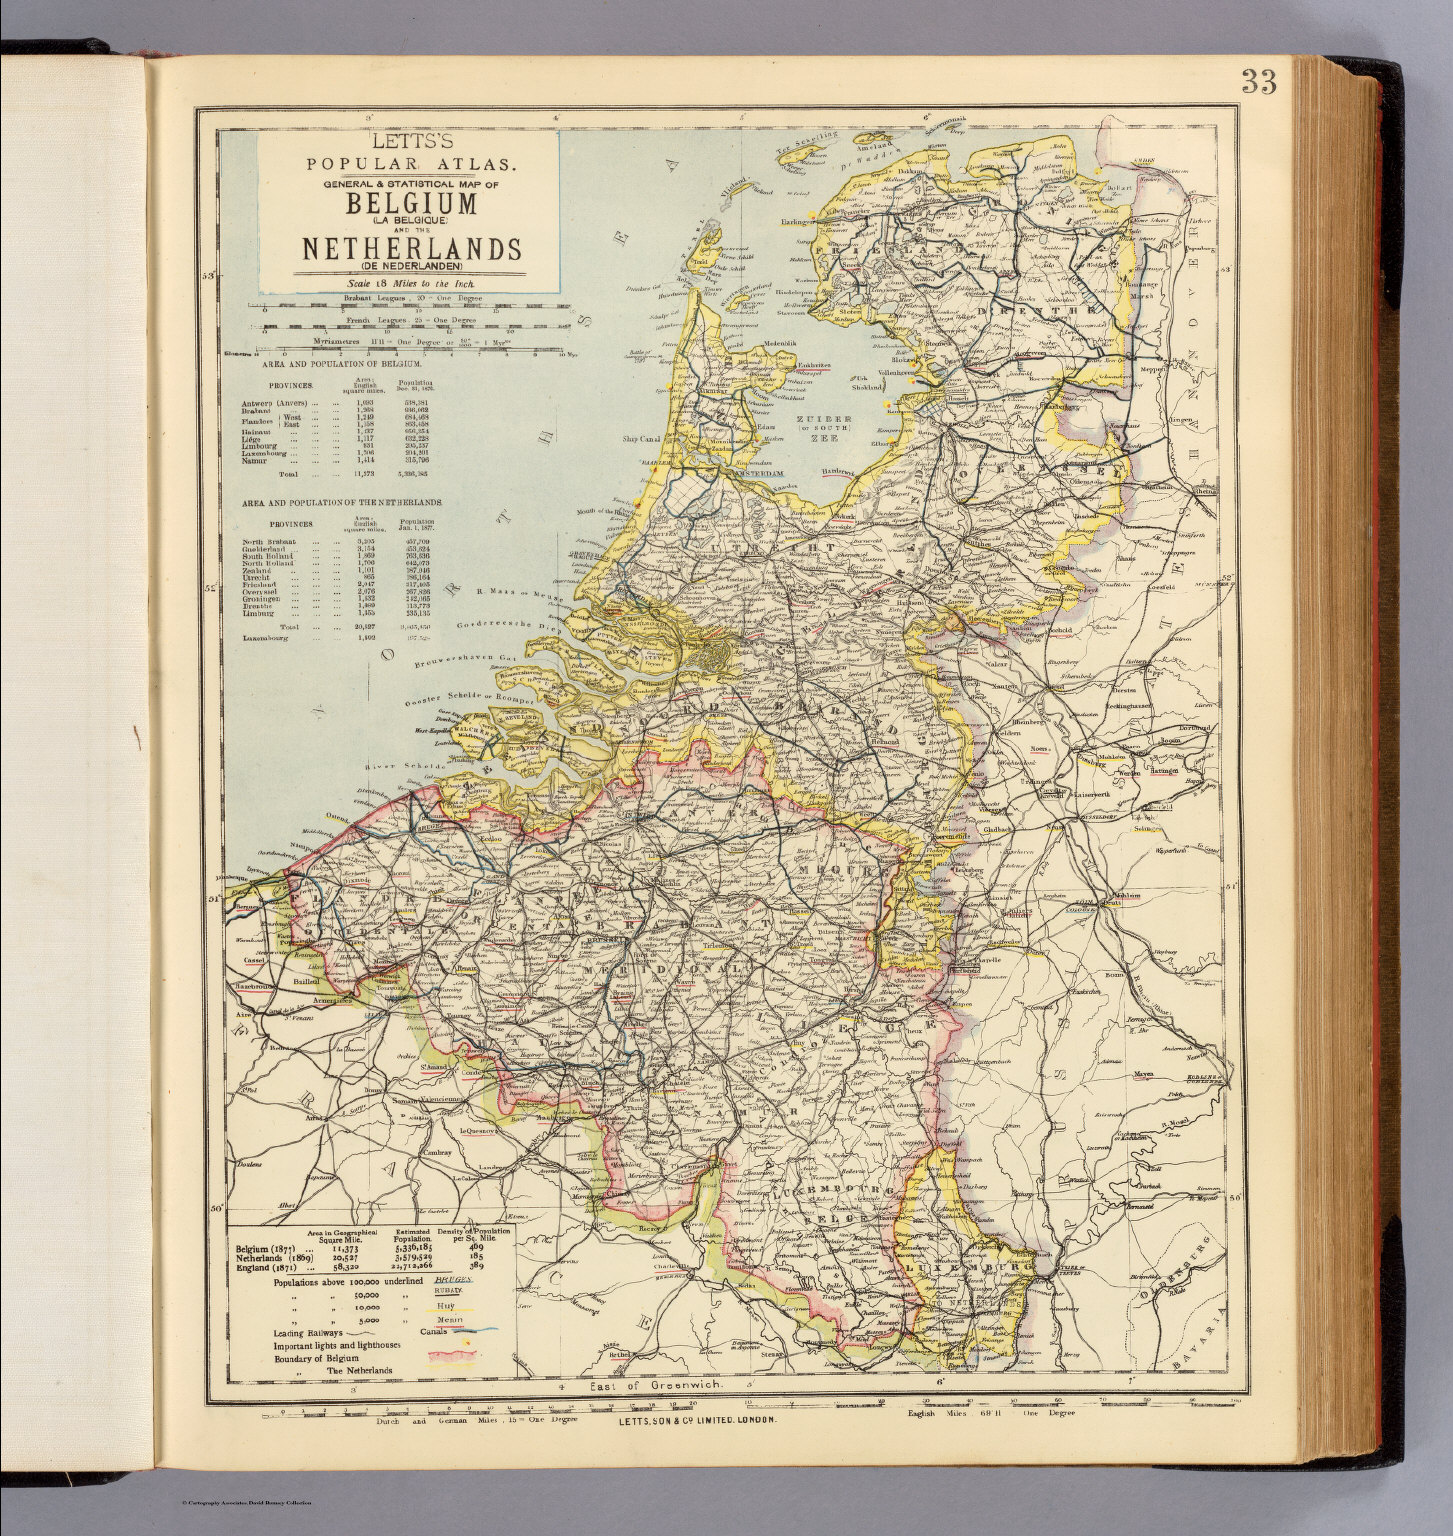 Belgium Netherlands David Rumsey Historical Map Collection